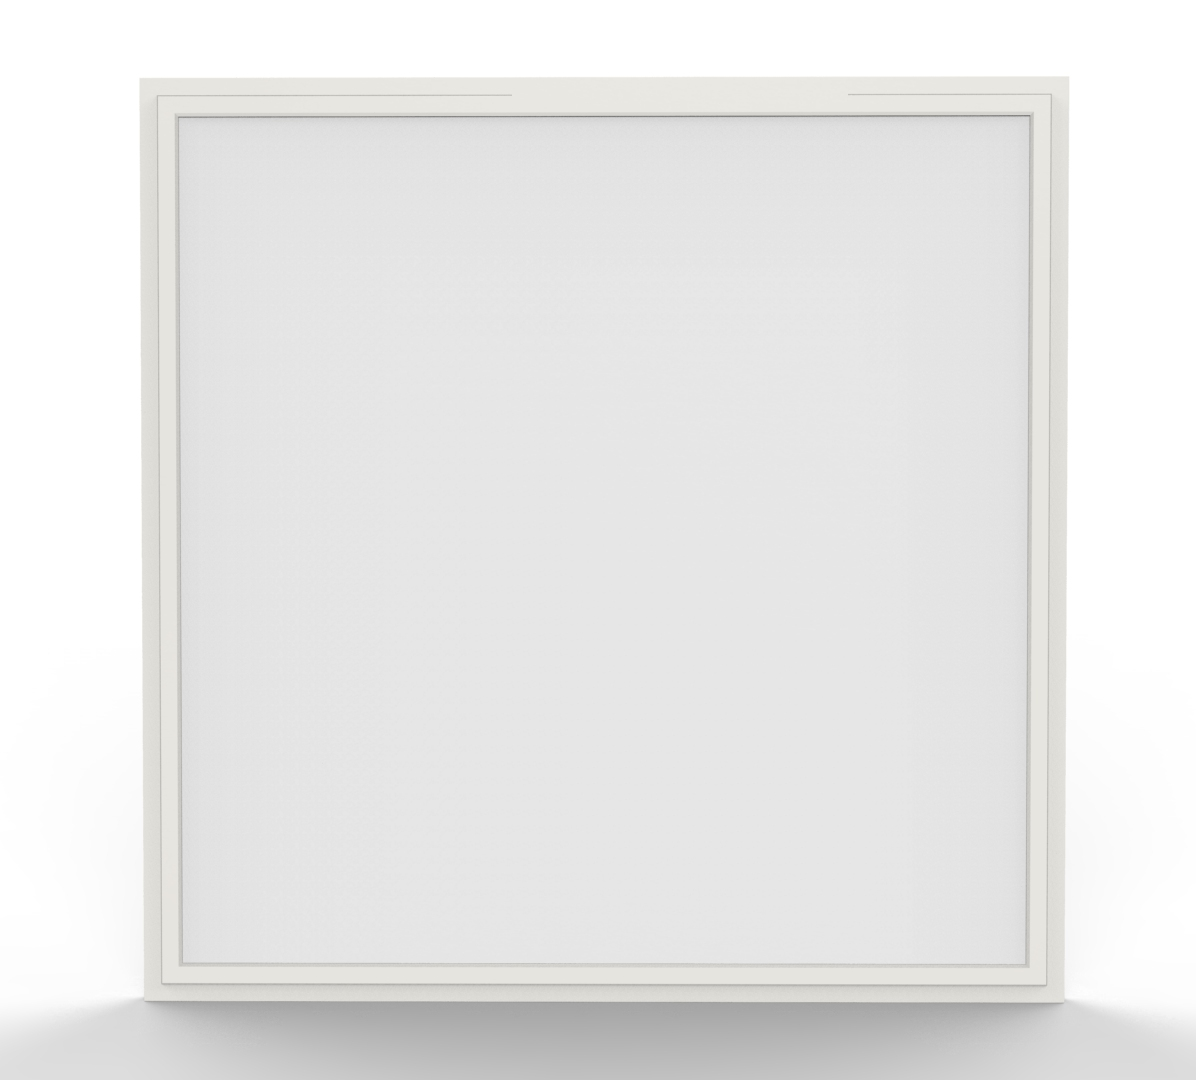 ShineLong 5 years warranty high bright Office school ultra-slim 300x300 12w flat led light panel led panel light price